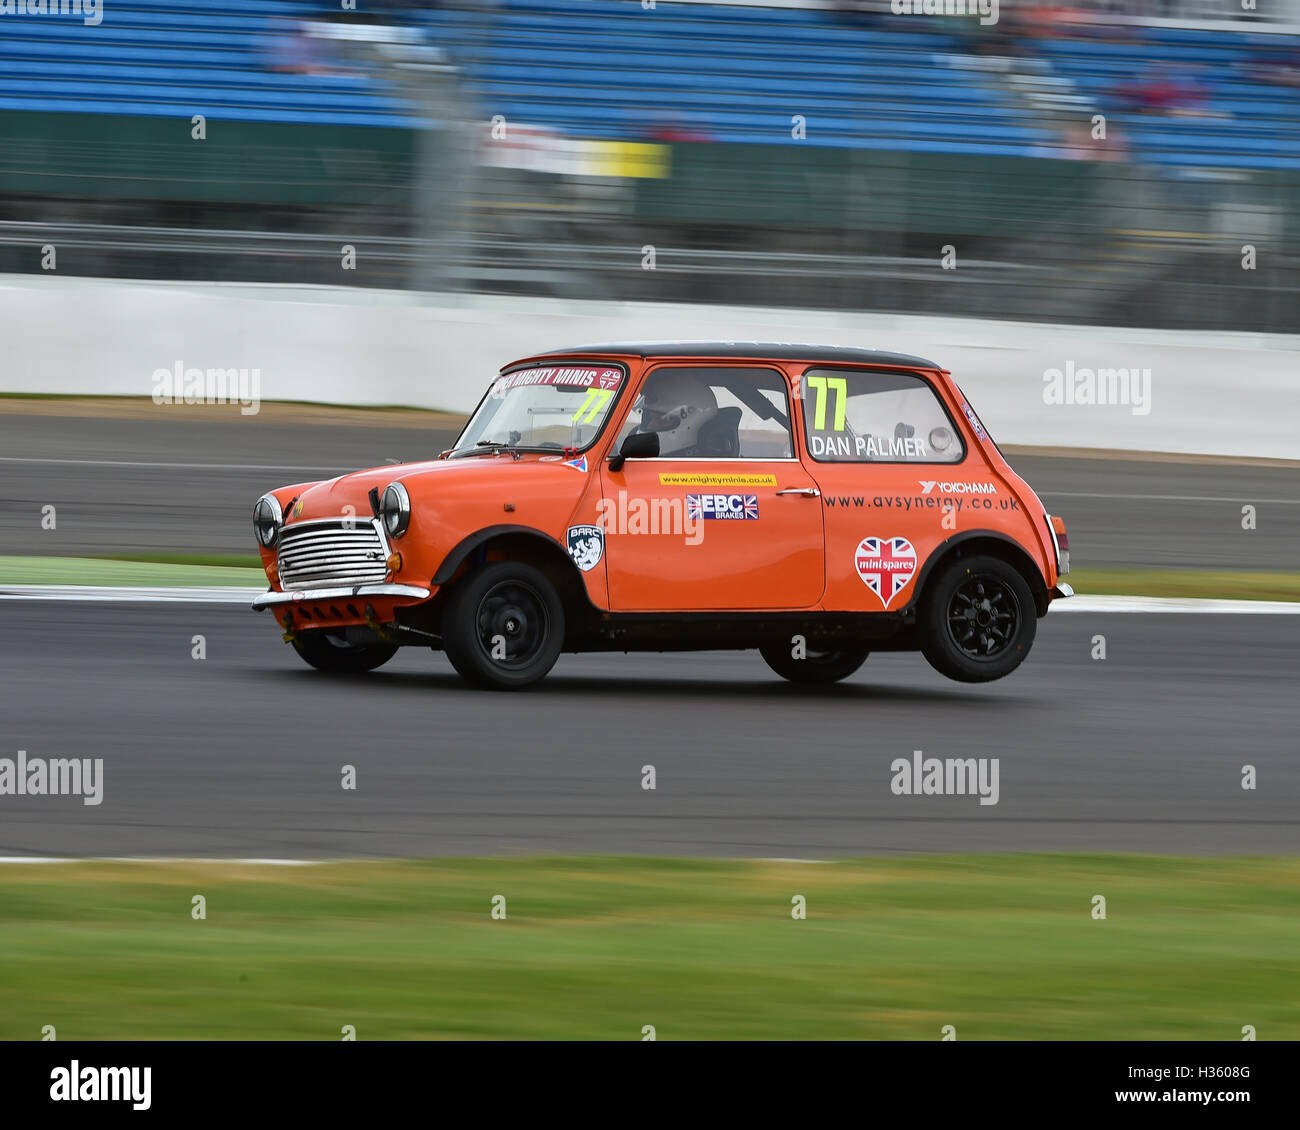 Dan Palmer, Super Mighty Mini, Mighty Mini Championship, Silverstone truck festival, Silverstone, Saturday, August - Stock Image